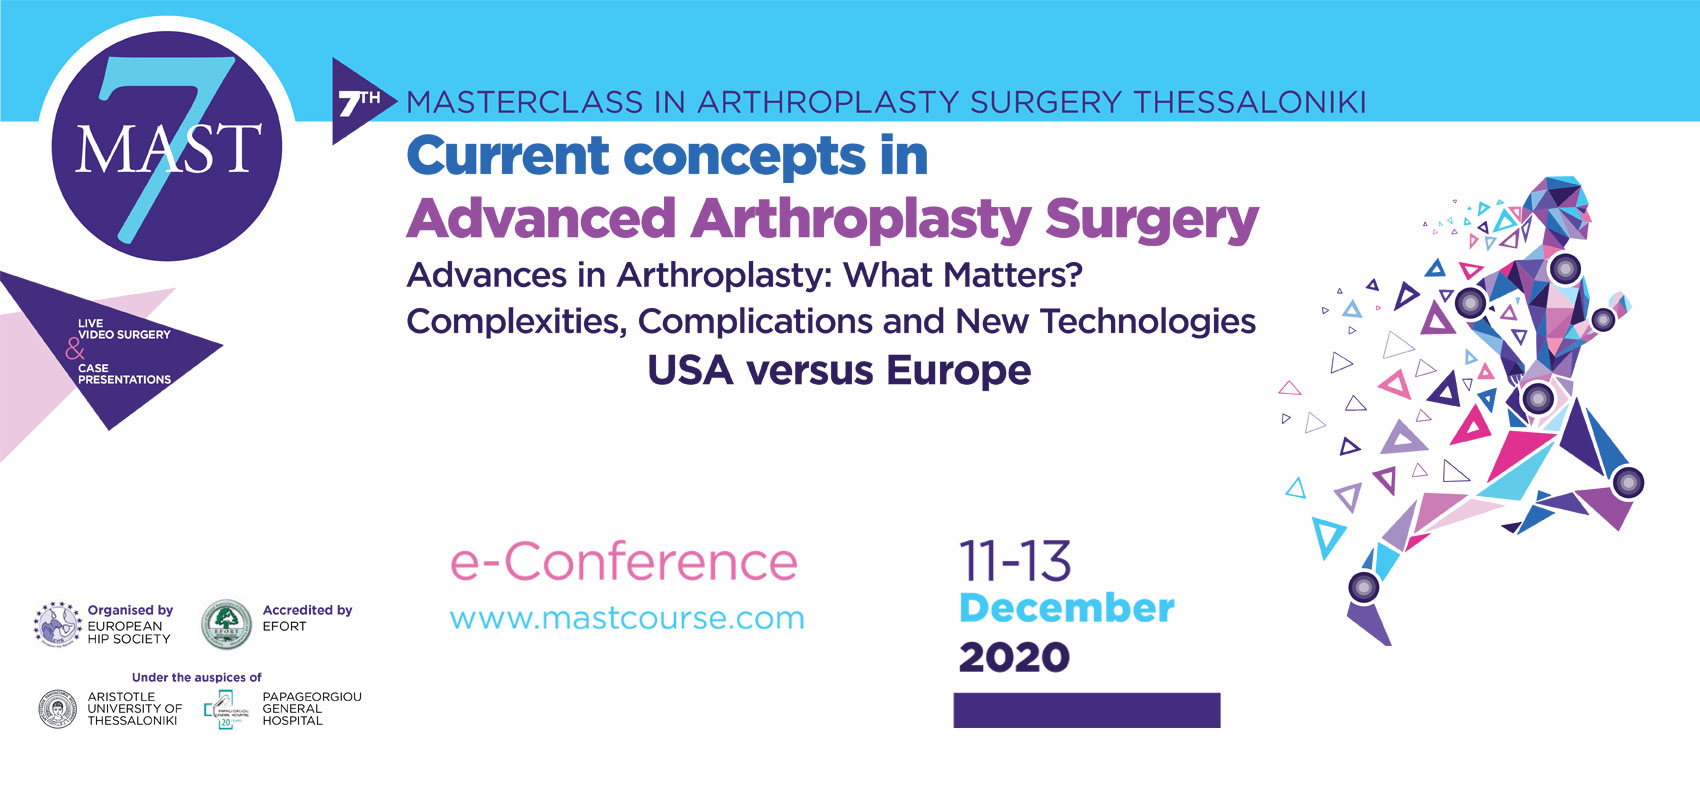 7th Masterclass in Arthroplasty Surgery Thessaloniki - Current Concepts in Advanced Arthroplasty Surgery